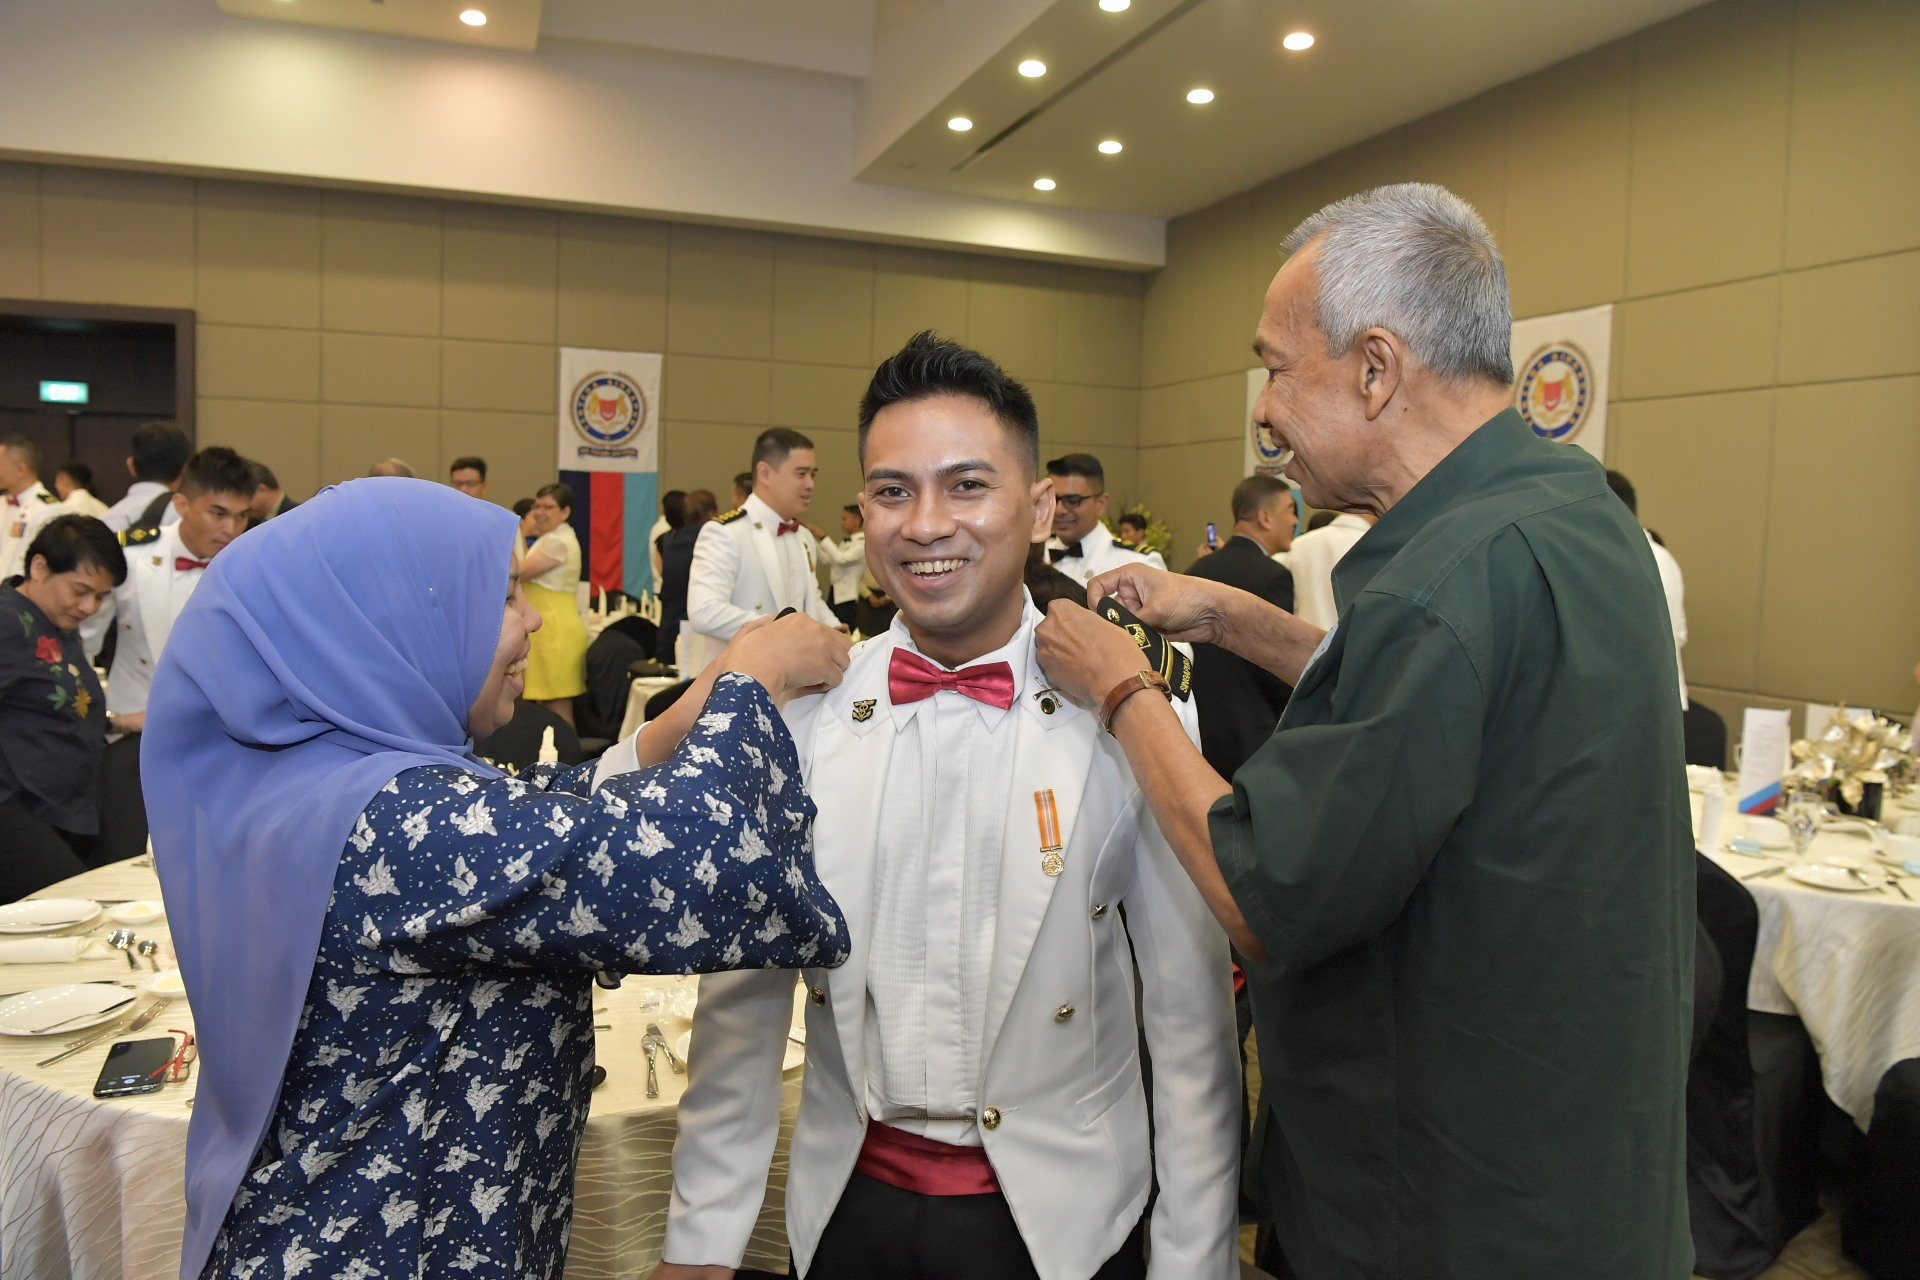 ME4A(NS) Mohamad Zaki Khan Bin Zulkafri's parents putting the ME4 rank epaulette on him.